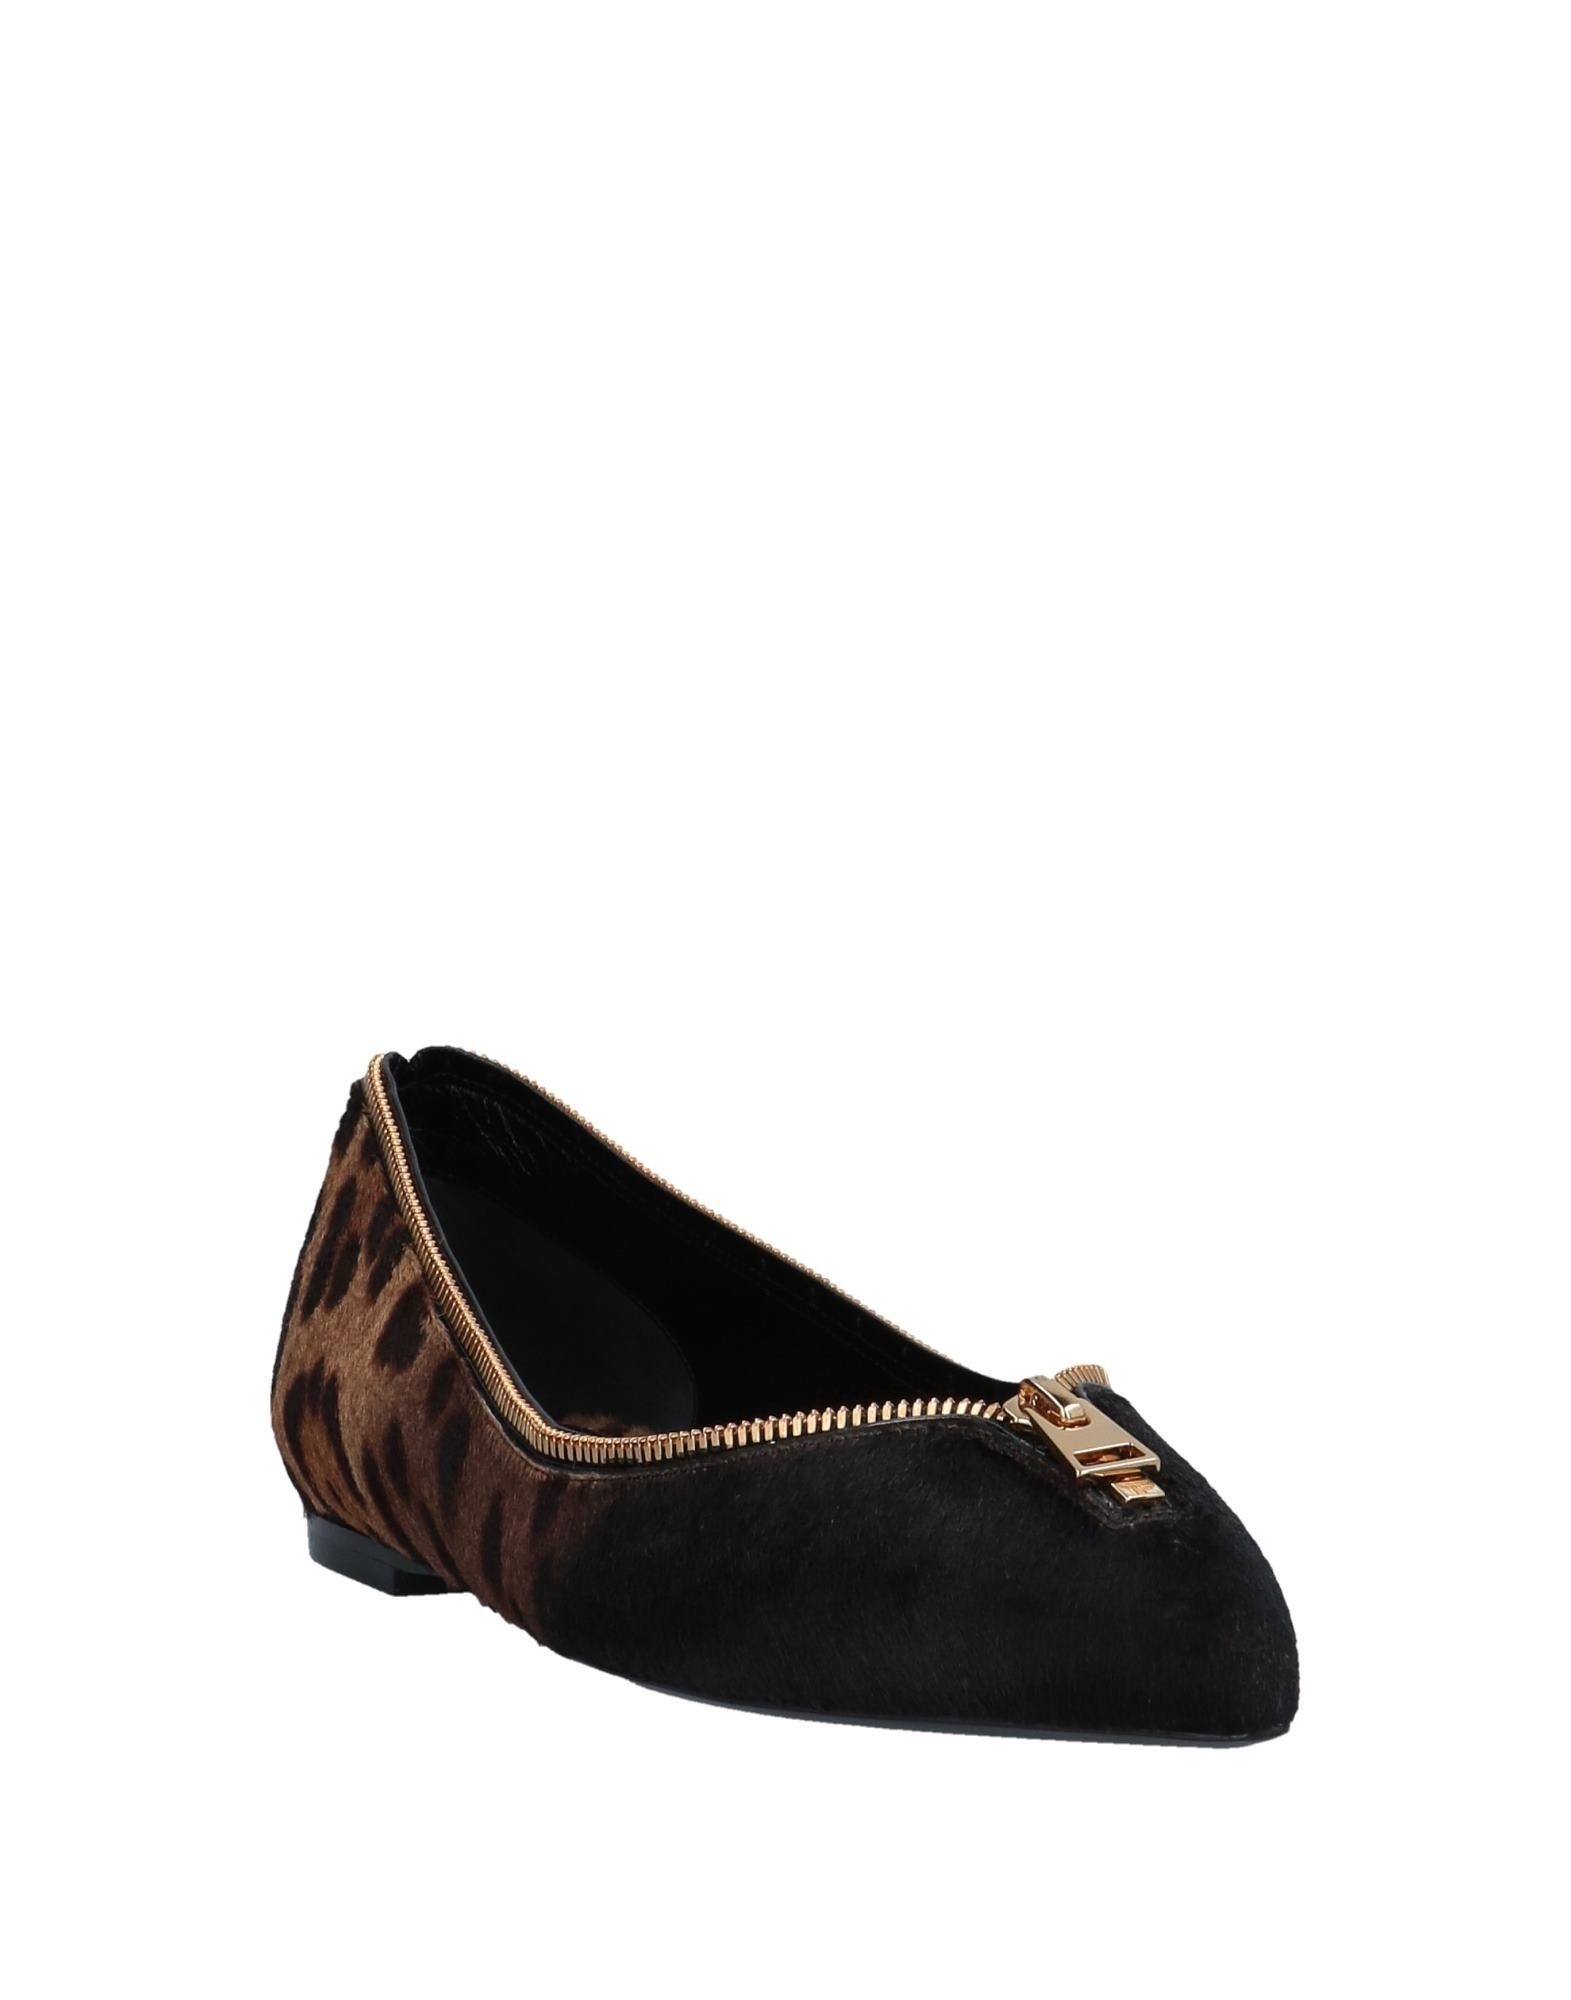 Tom Ford Beige Print Leather Pointed Ballet Flats